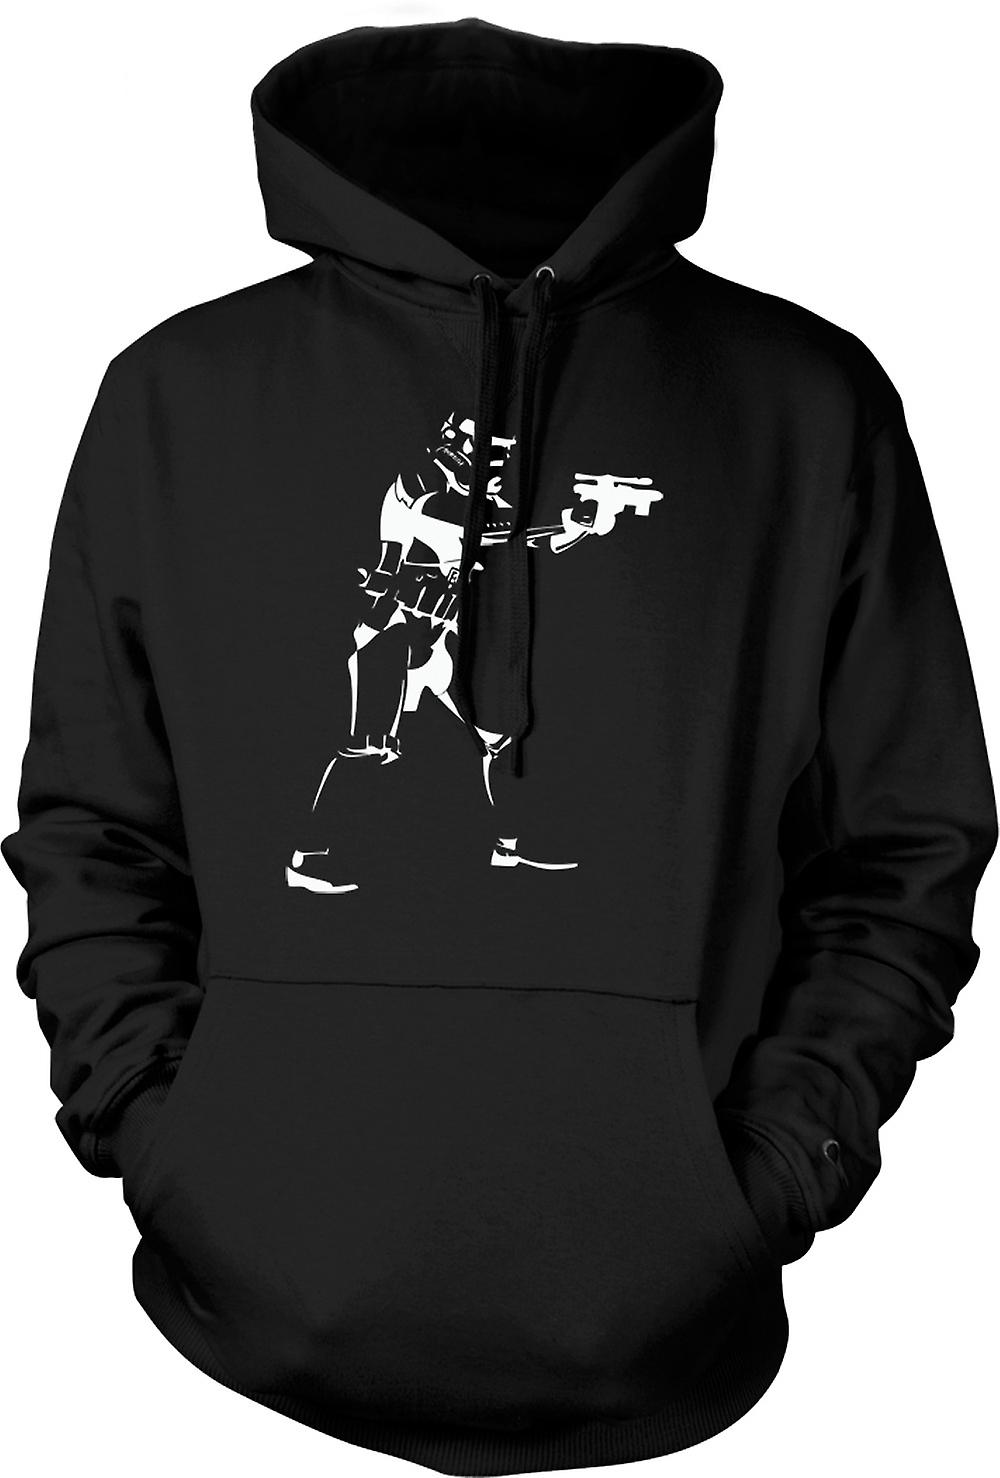 Mens Hoodie - Star Wars - Storm Trooper - Pop-Art